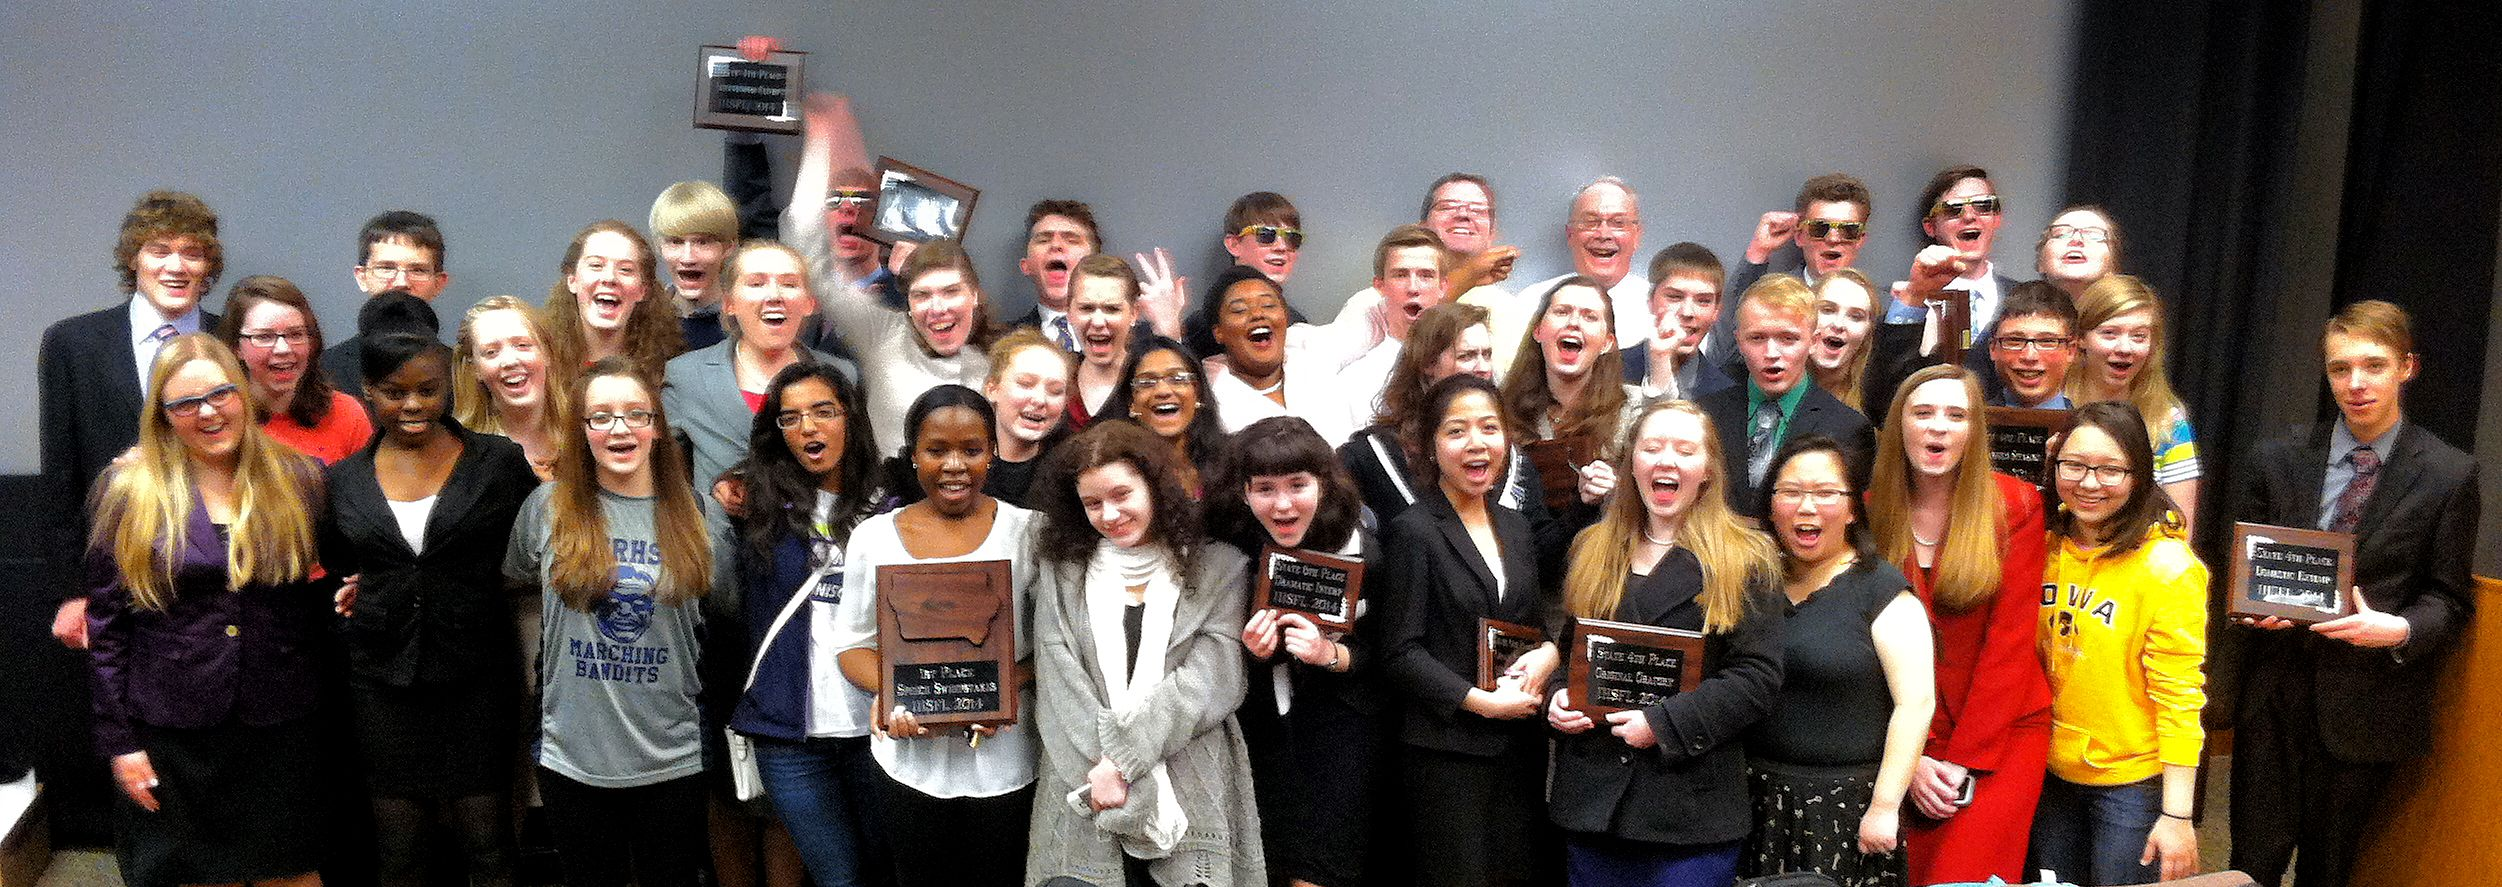 victory in a debate tournament A debate camp or debate institute is a training workshop for high school and  collegiate  often there are mini tournaments at the end of each camp, and  students are given speaker and  victory briefs institute (vbi), multiple locations,  [32.